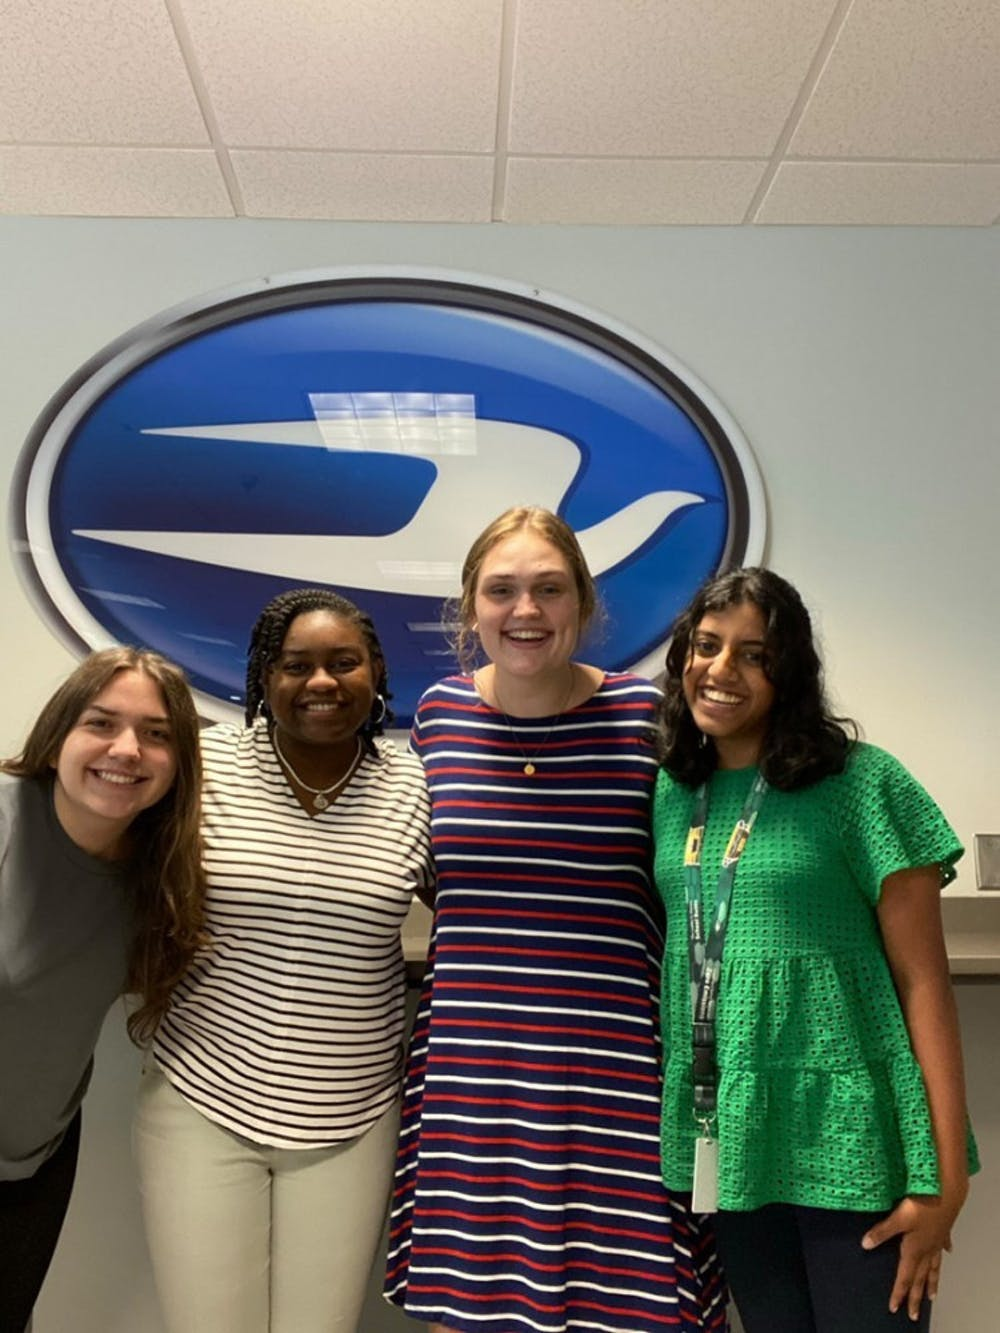 (Left to right) Kimberly Lopez, Asia Cladd, Christianne Grist and Hannah Jeevanayagam  posing at their internship with Blue Bird. The four of them are just a few of the Mercer students who worked at the bus manufacturer this summer. Photo provided by Hannah Jeevanayagam.